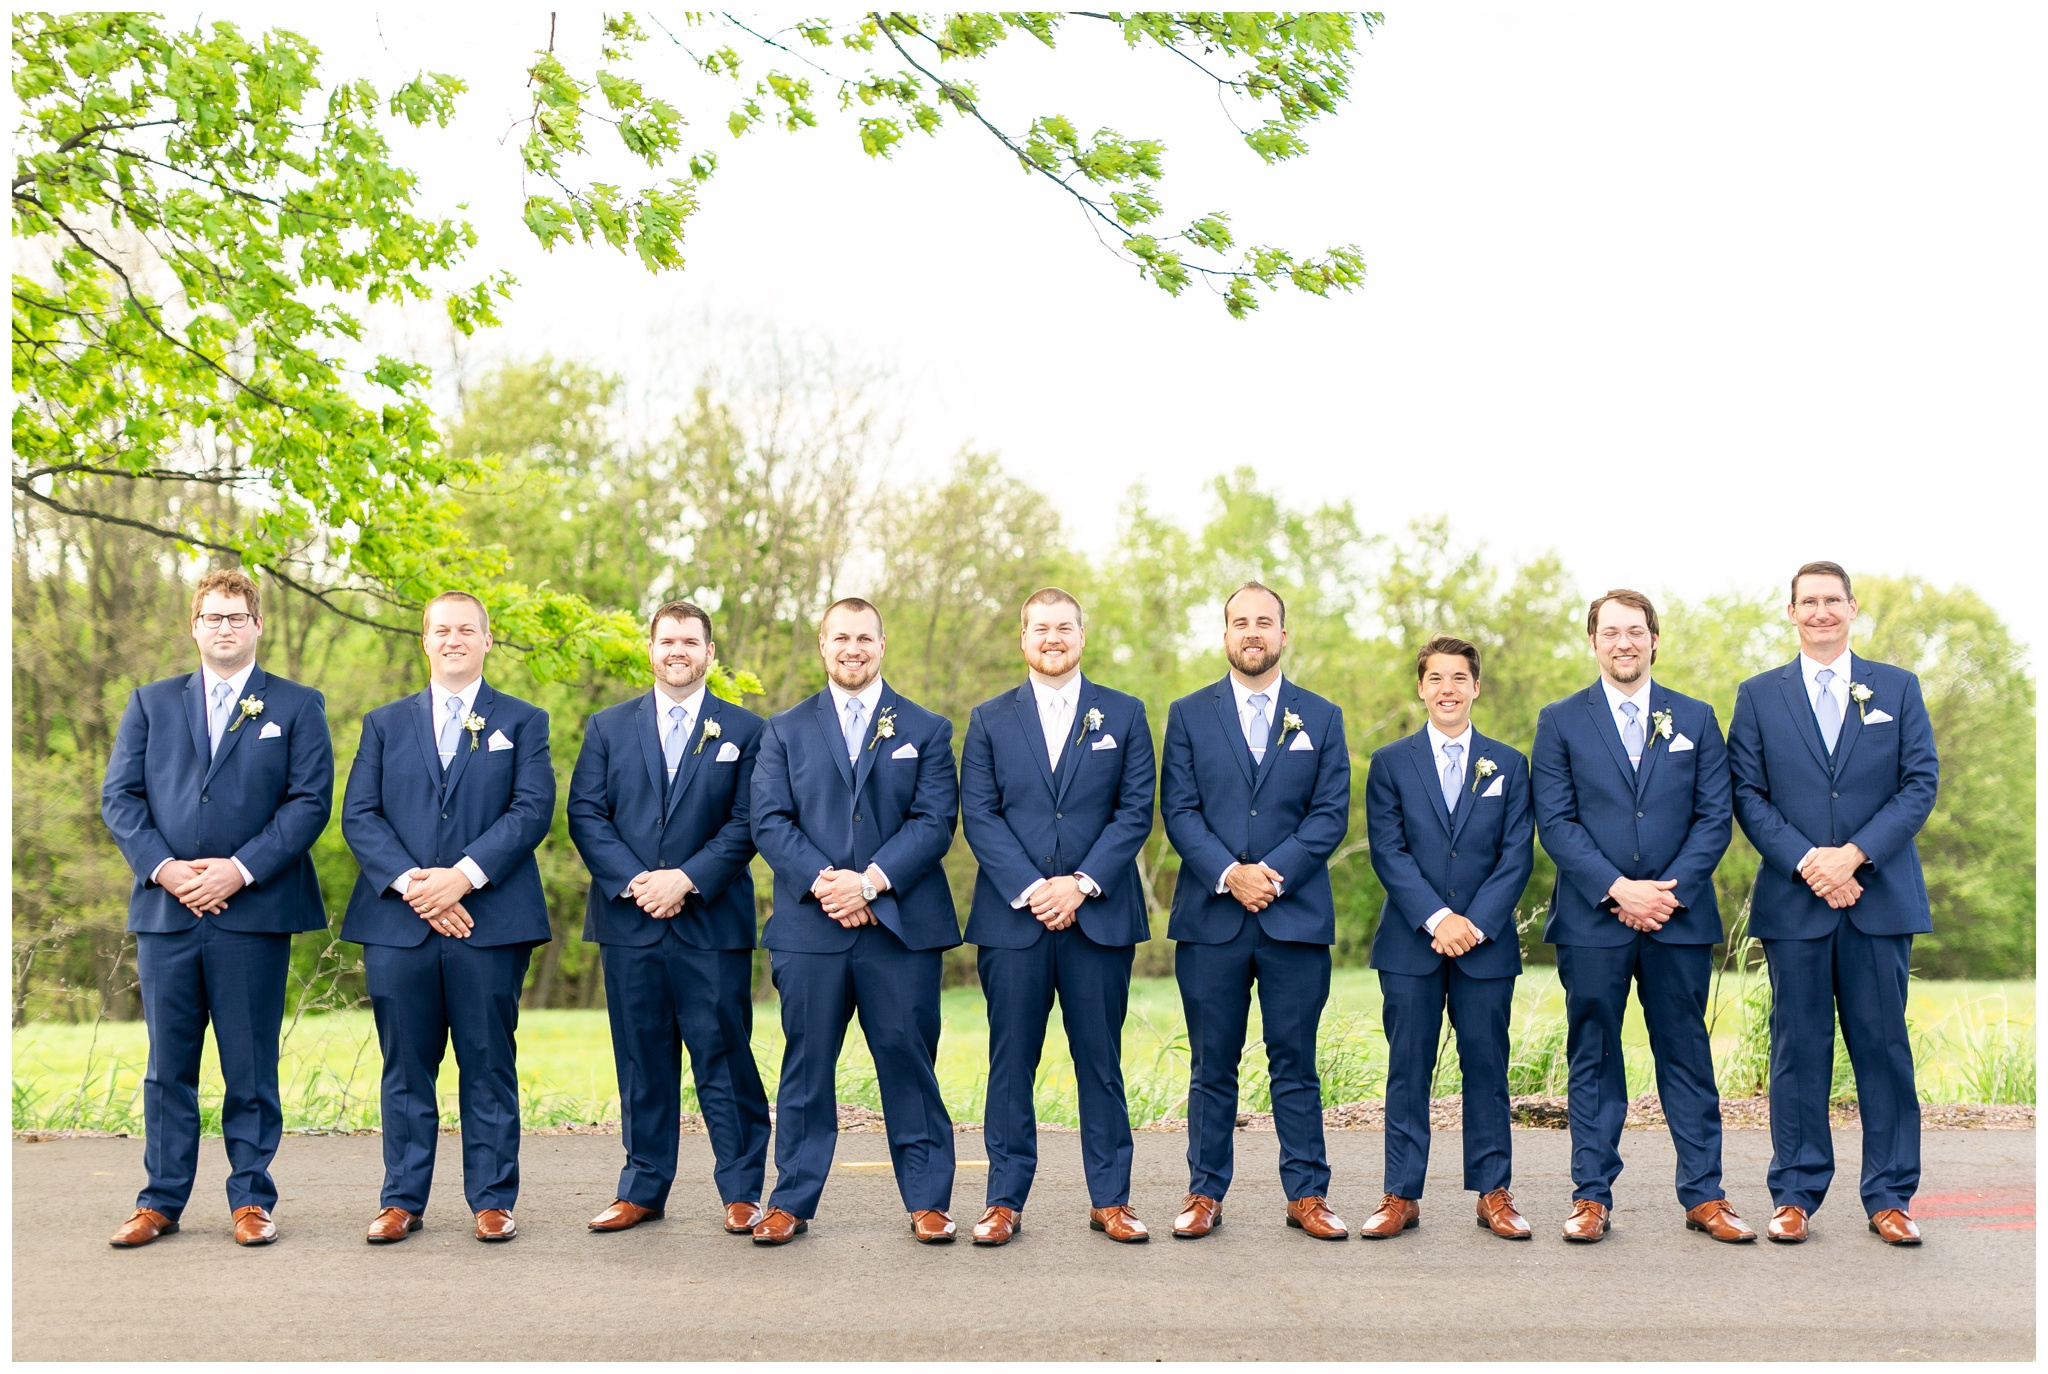 vennebu_hill_baraboo_wisconsin_wedding_madison_wisconsin_wedding_photographers_3031.jpg